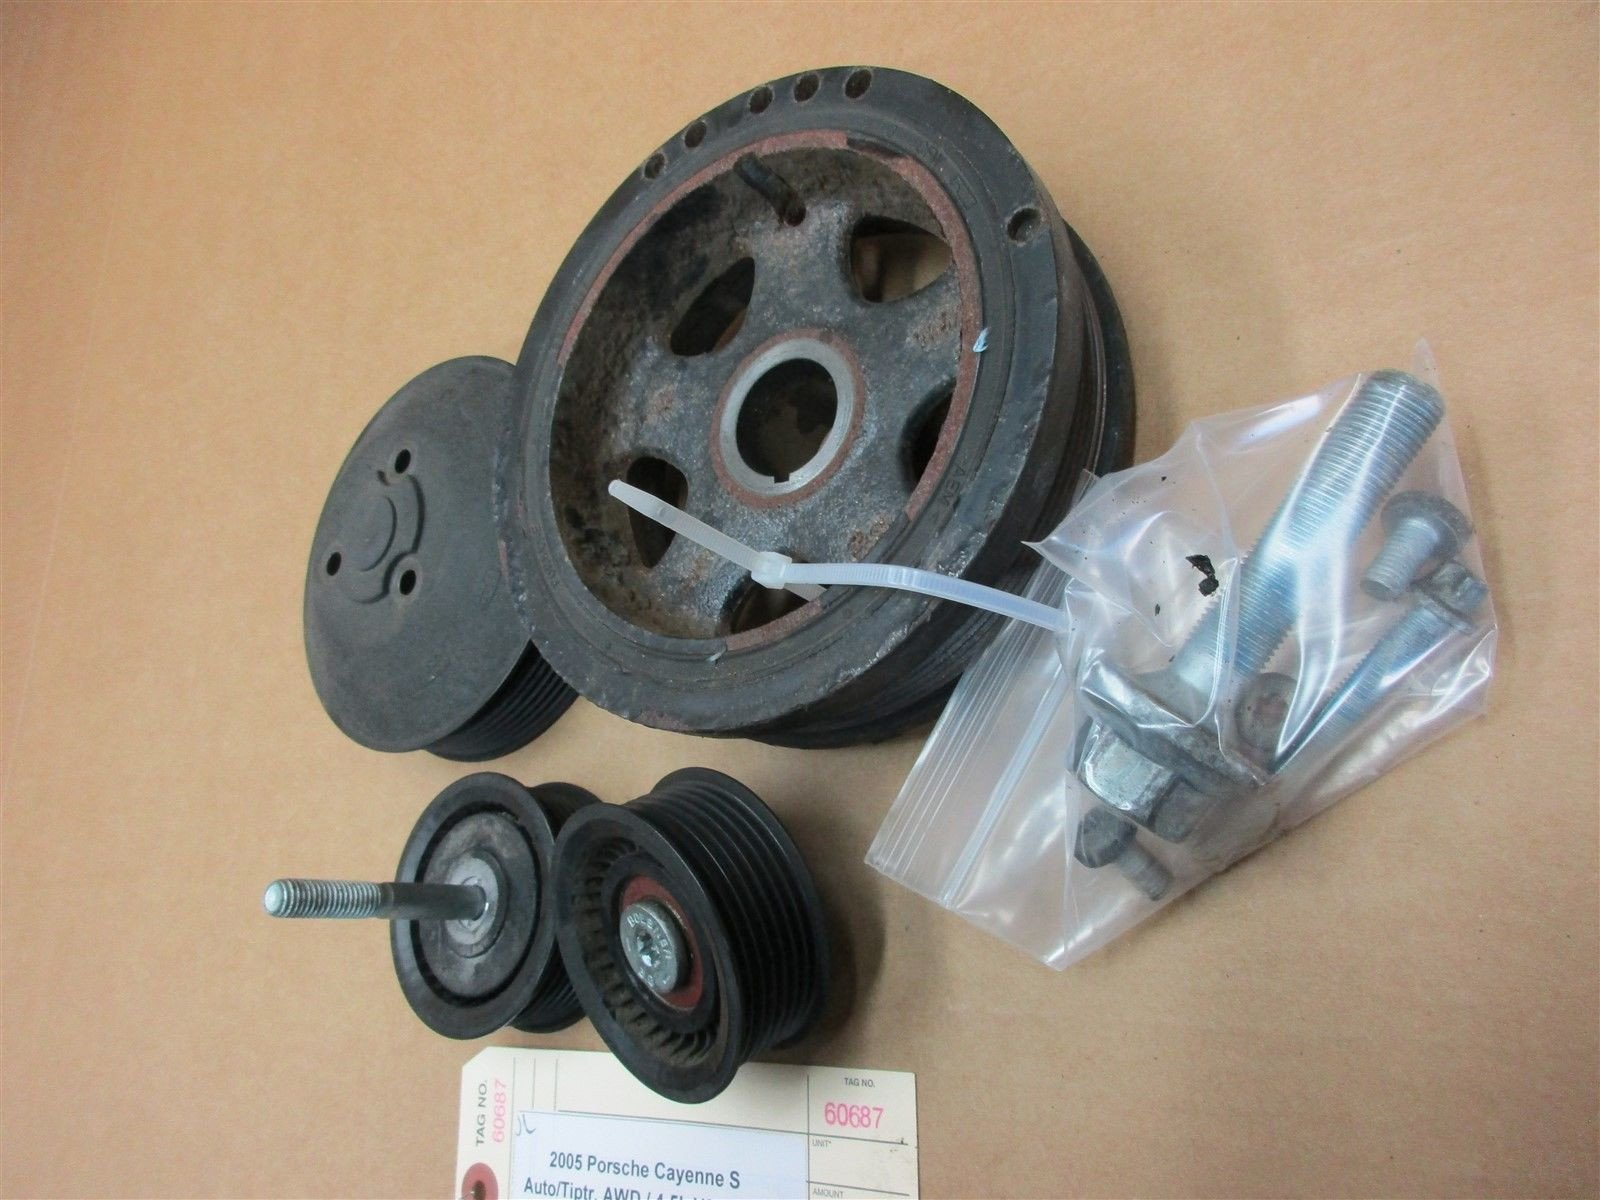 05 Cayenne S AWD Porsche 955 Engine 4.5 PULLEYS 94810609001 94810211900 105,118